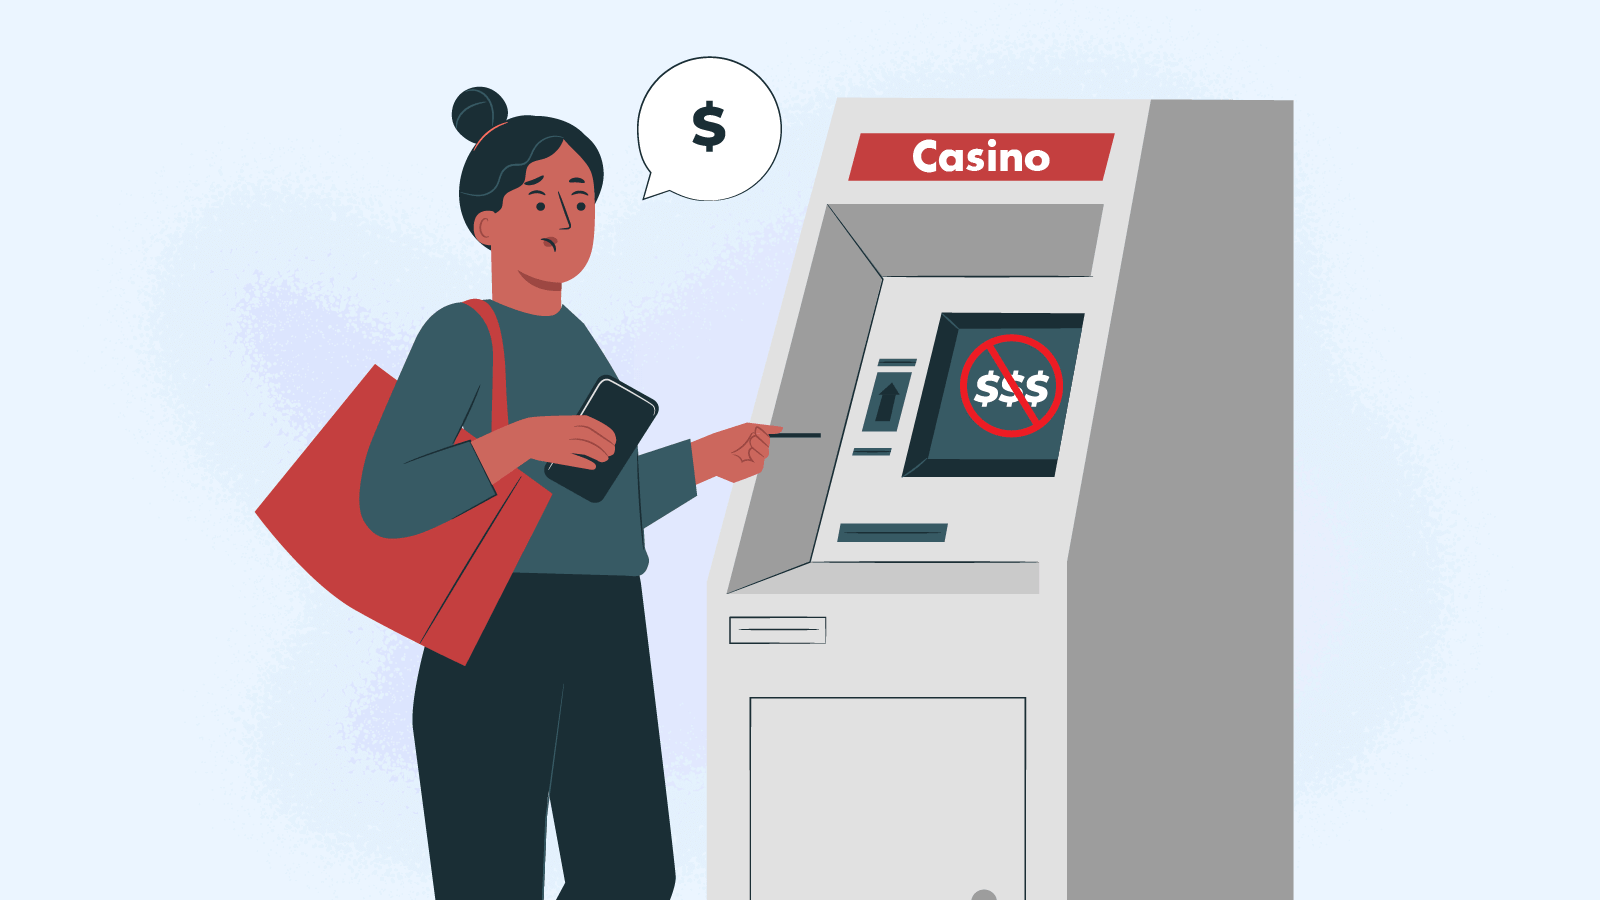 Why you cannot withdraw money from the casino